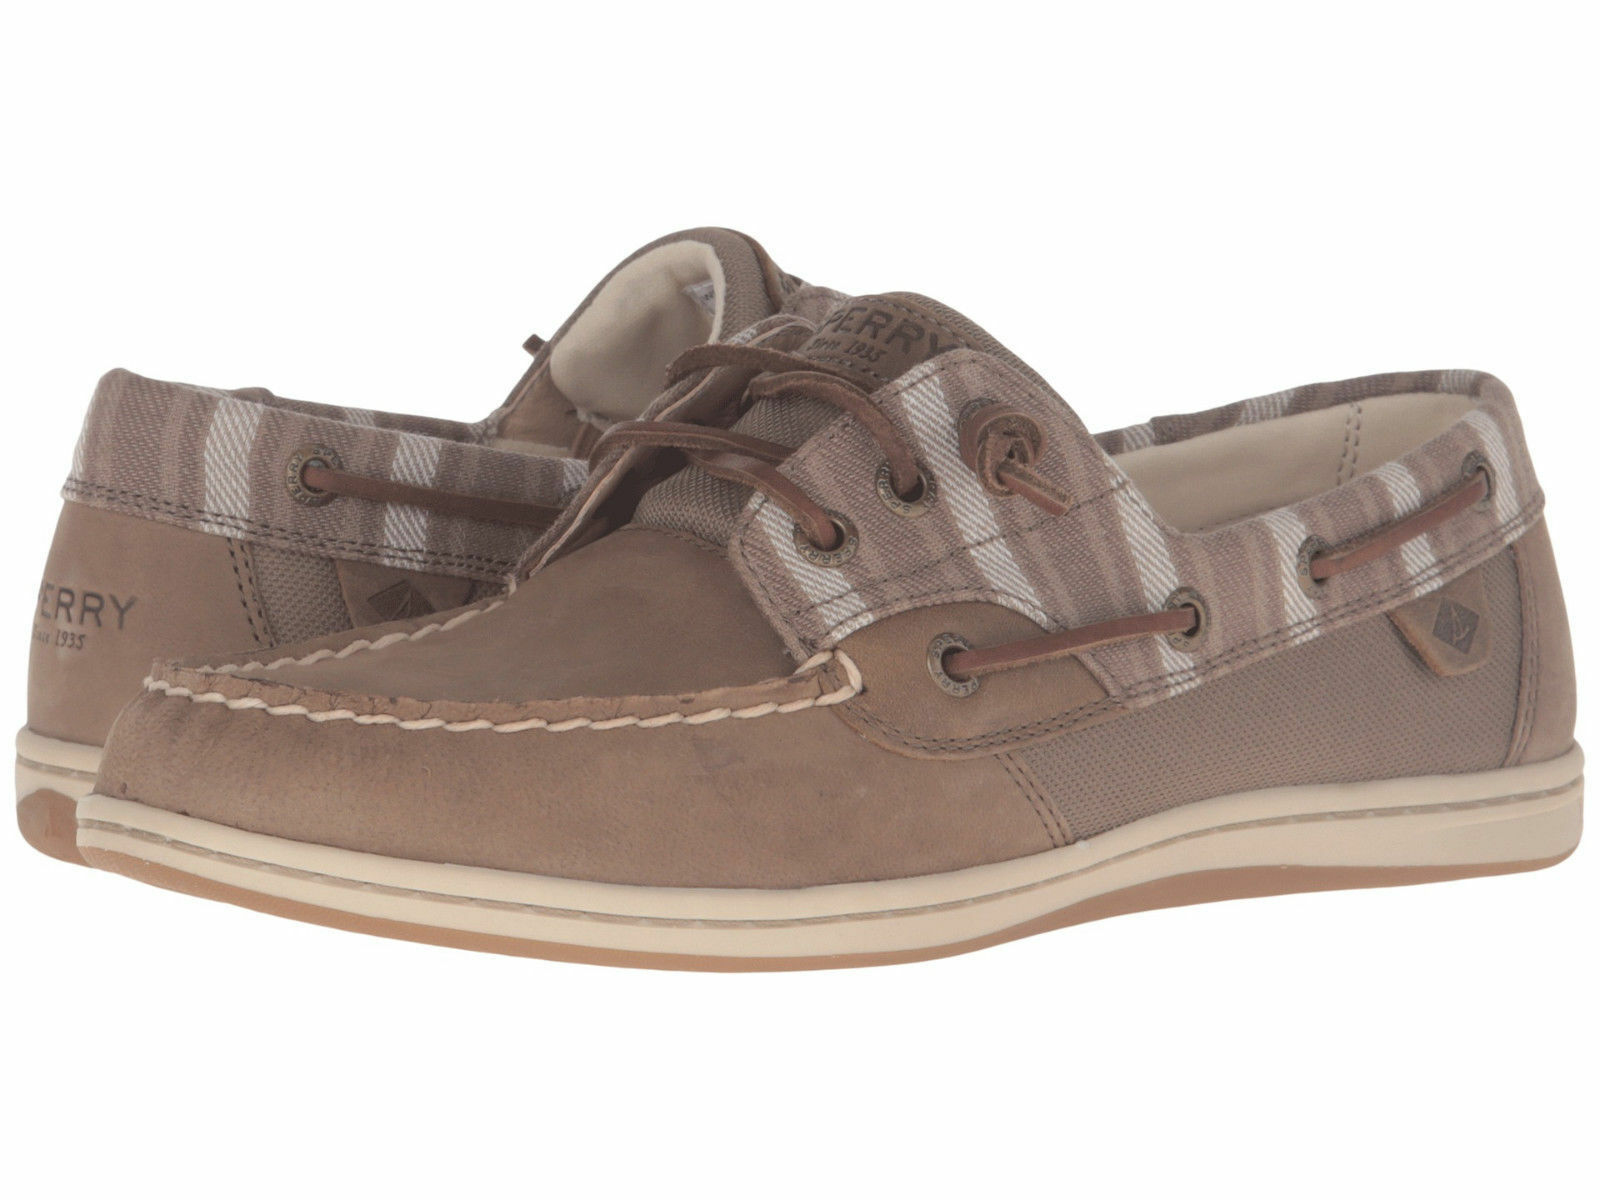 NIB Sperry Top-Sider Songfish Boat shoes Leather Striped Taupe Womens Sz 6.5 - 9